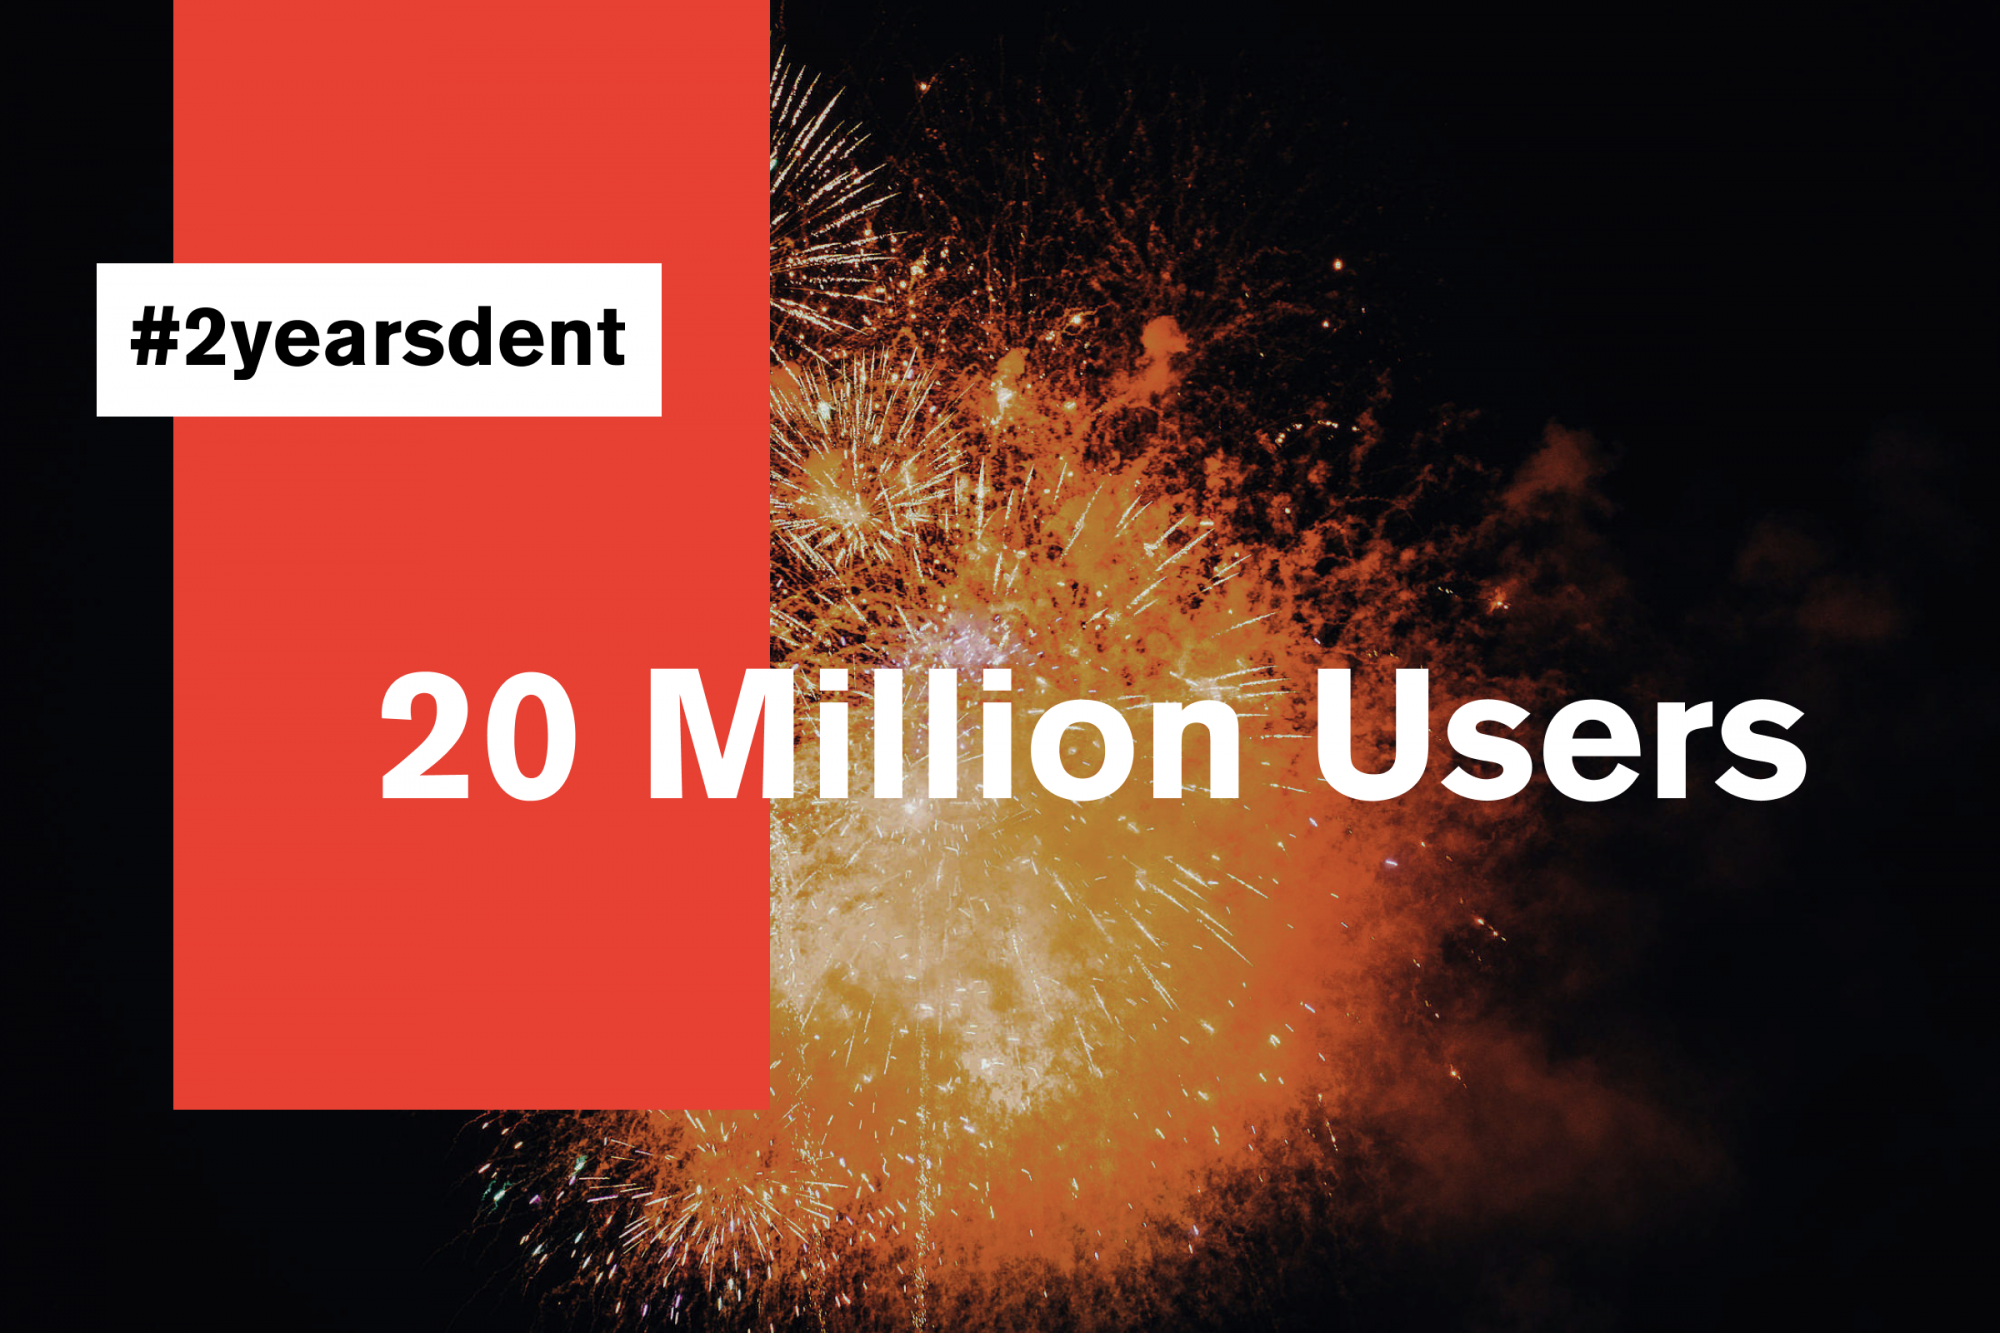 The Picture shows a fire work the celebration of reaching the 20 million DENT users.